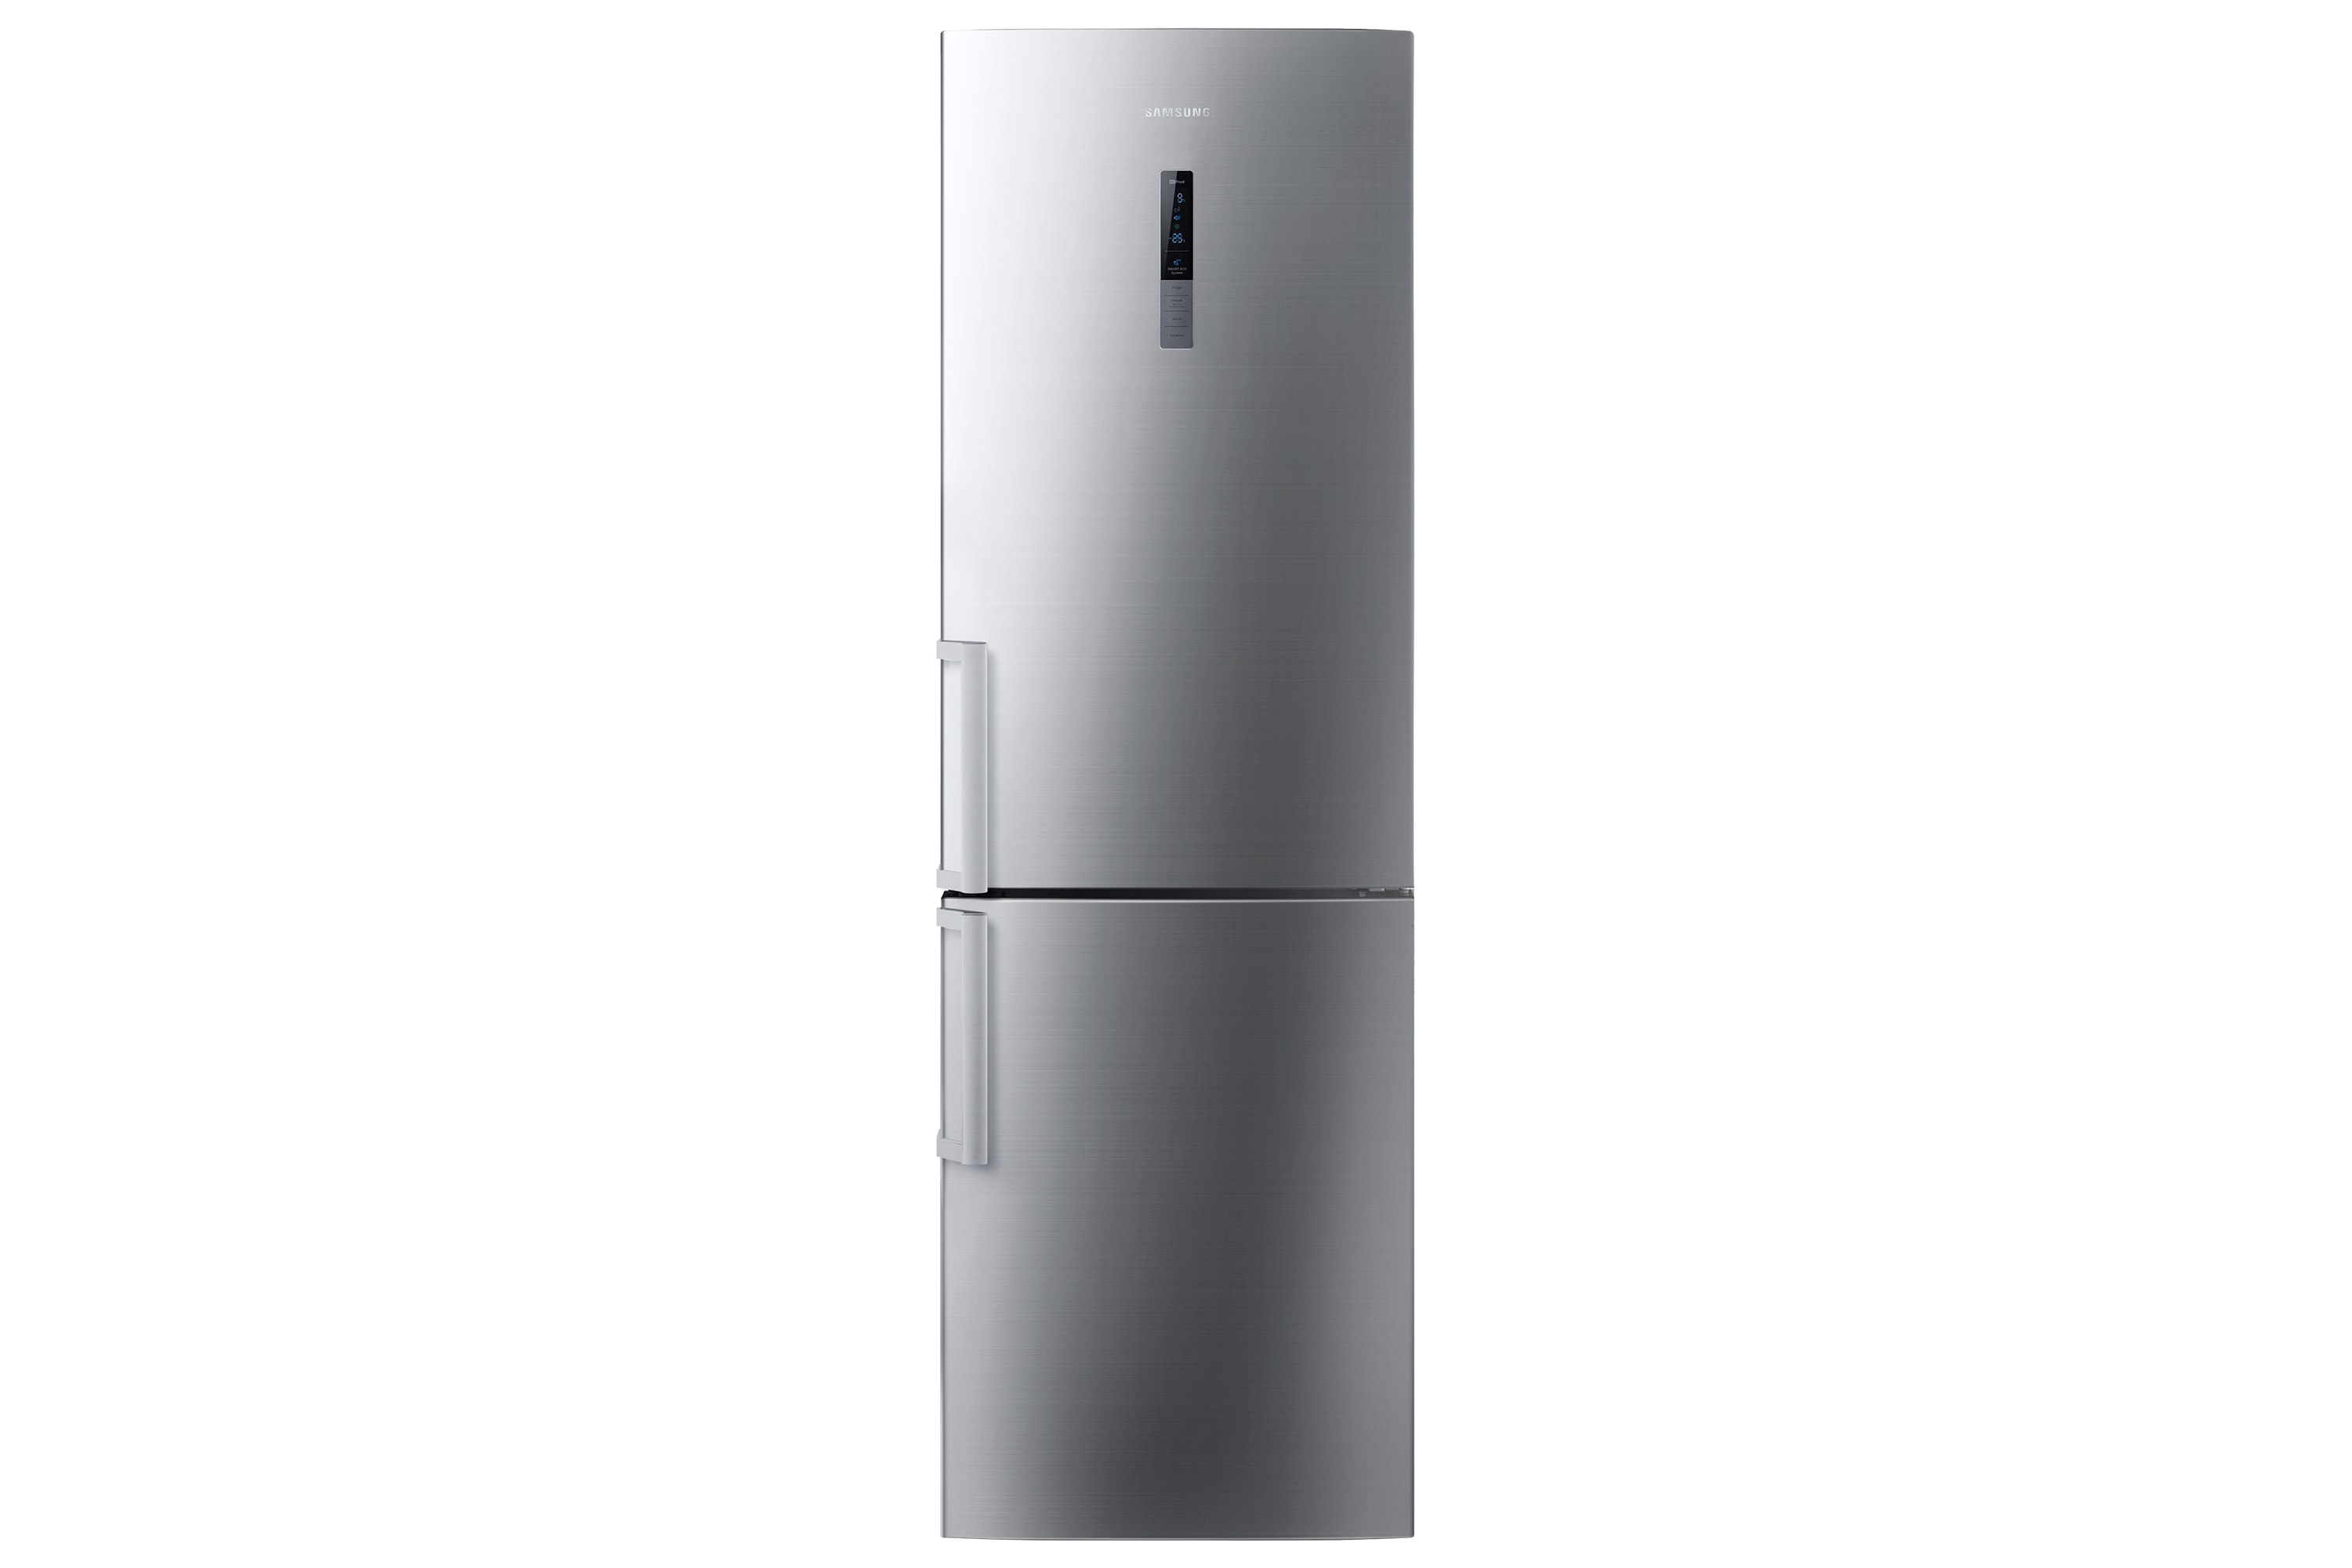 GRANCRU BMF with Larger Capacity, 419 L, Refined Steel